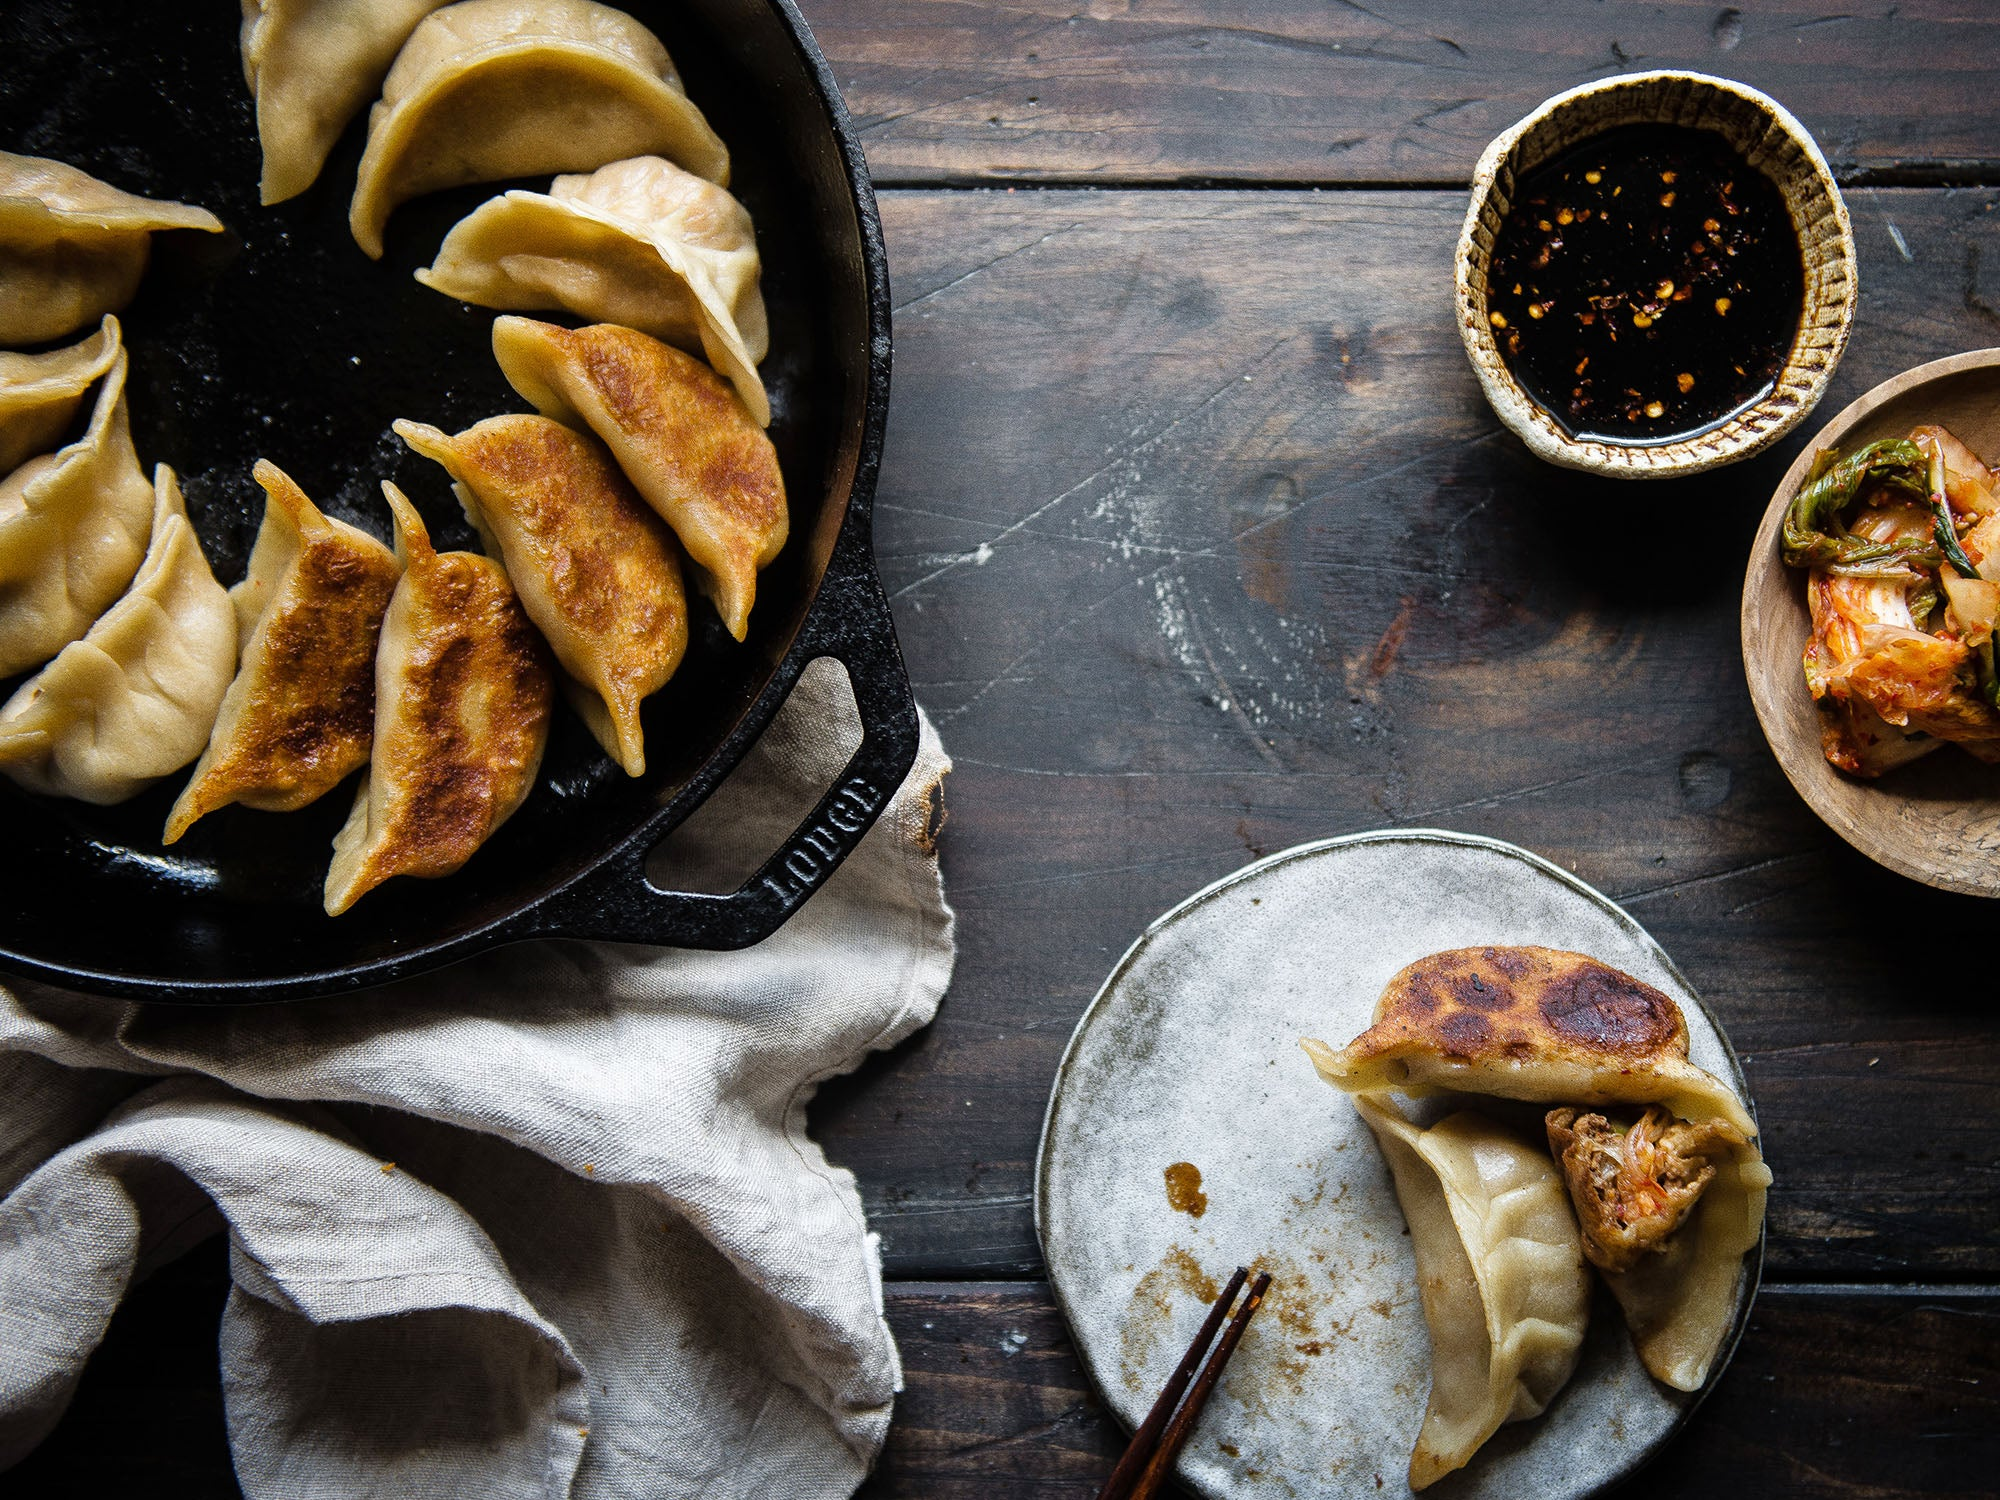 Pork and Kimchi Potstickers